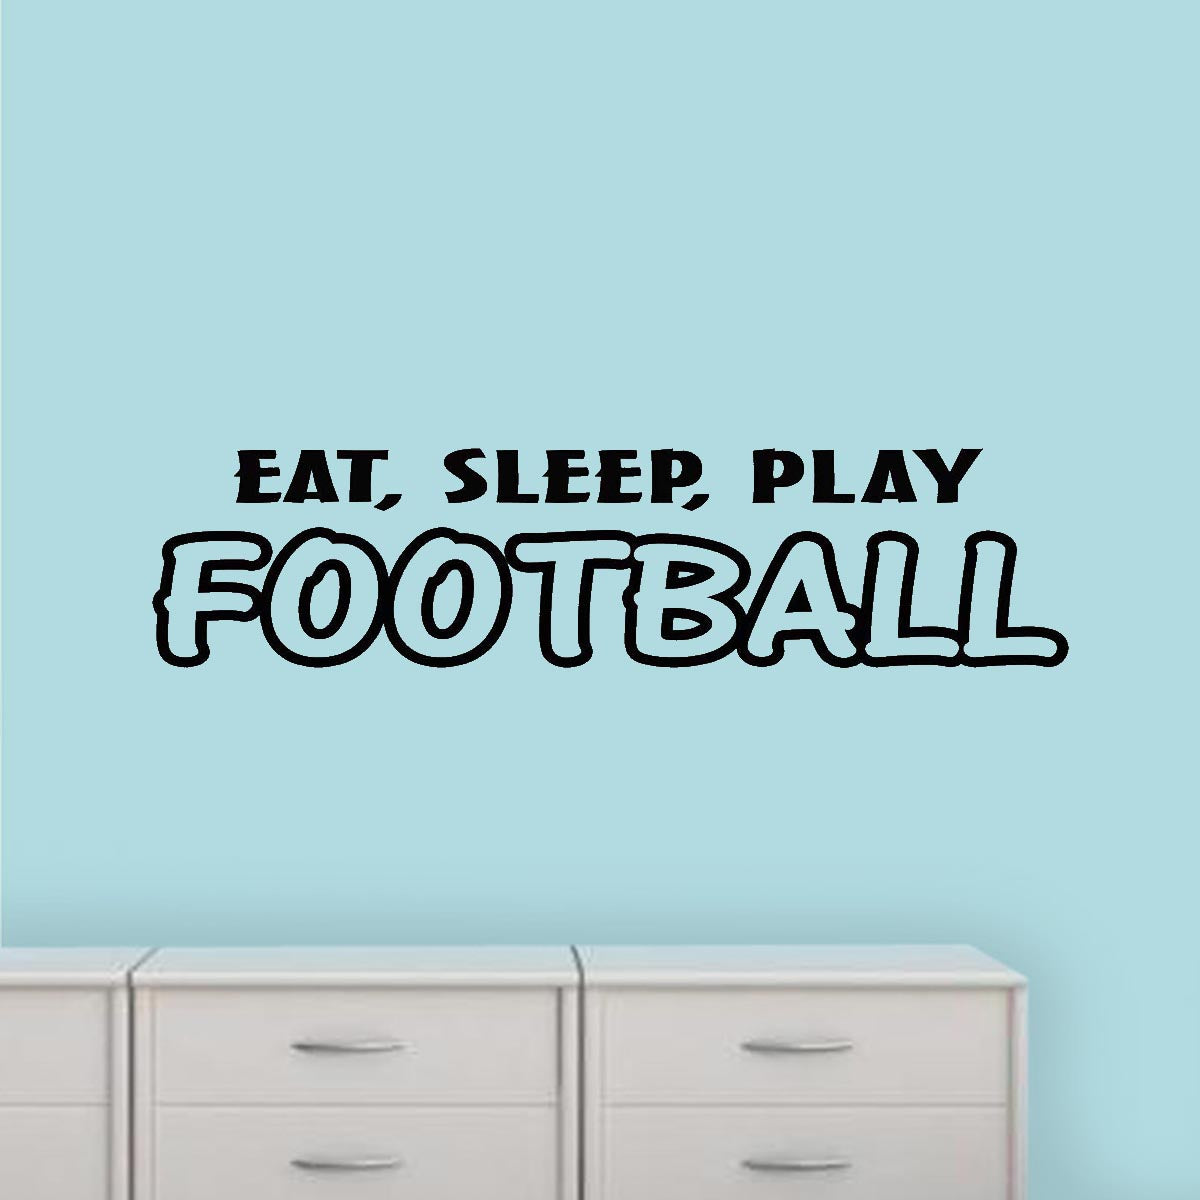 VWAQ Eat Sleep Play Football Sports Wall Decal - VWAQ Vinyl Wall Art Quotes and Prints